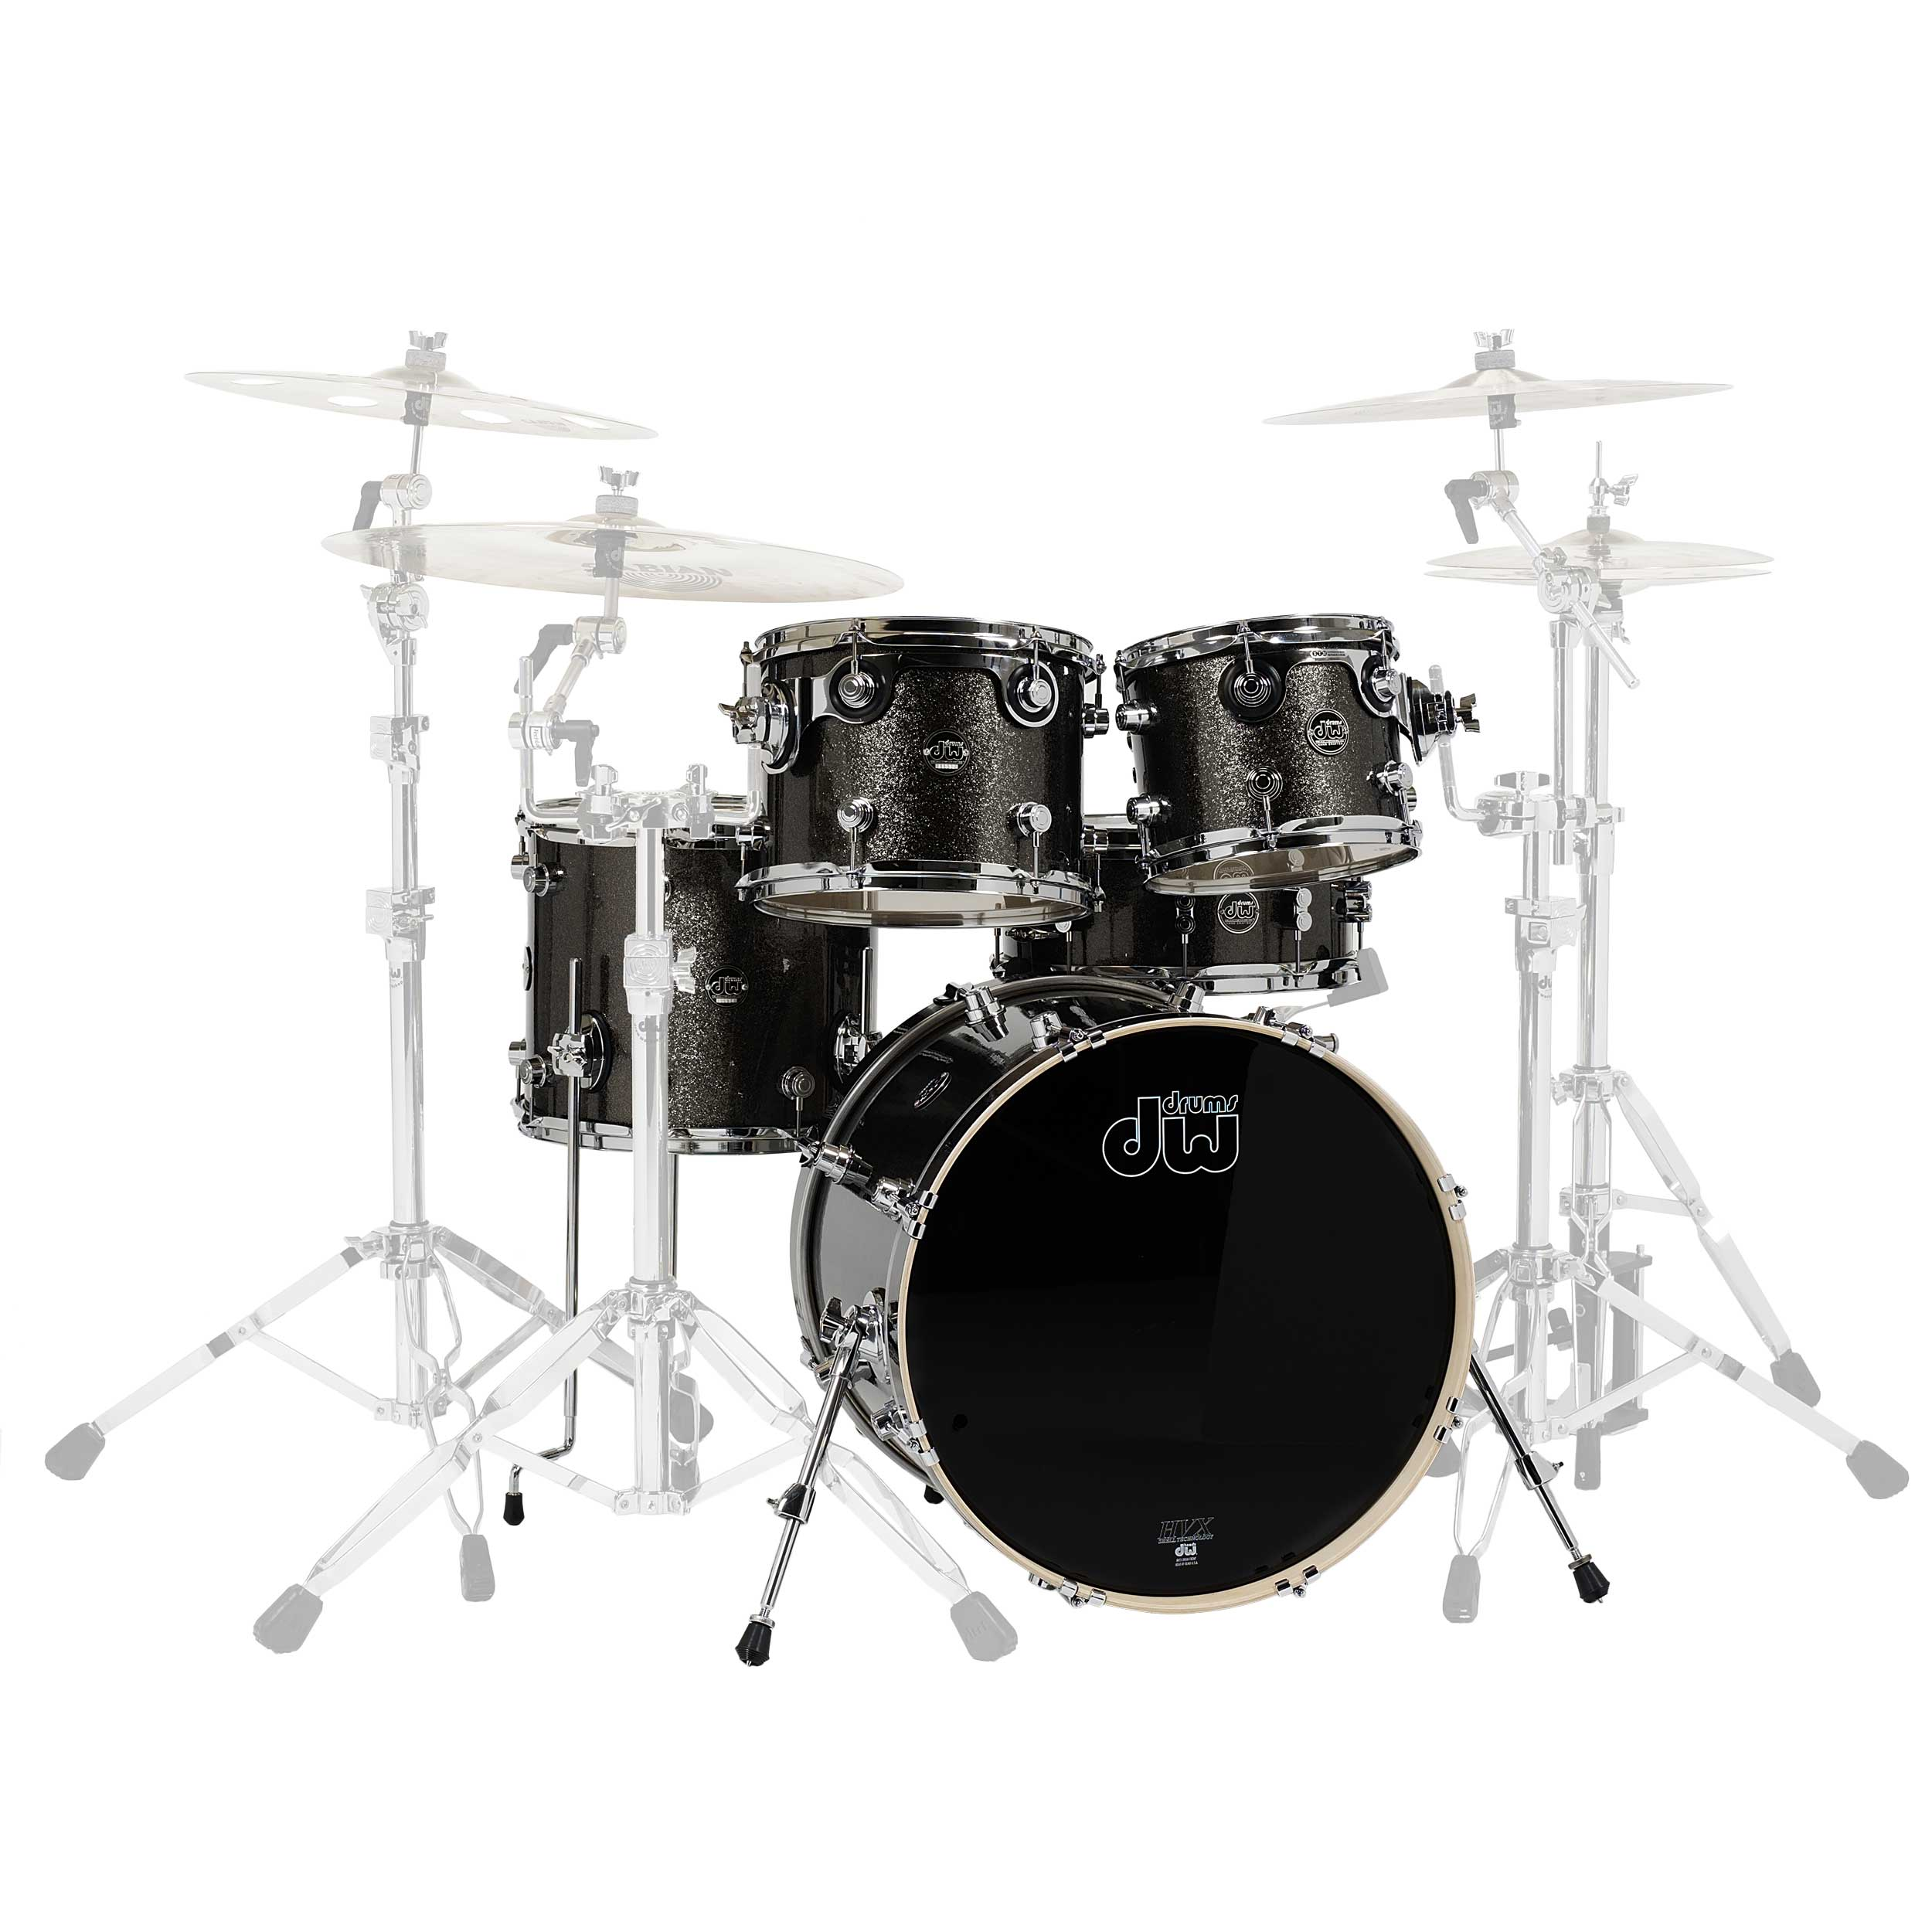 "DW Performance 5-Piece Drum Set Shell Pack (22"" Bass, 10/12/16"" Toms, 14"" Snare) in Pewter Sparkle"